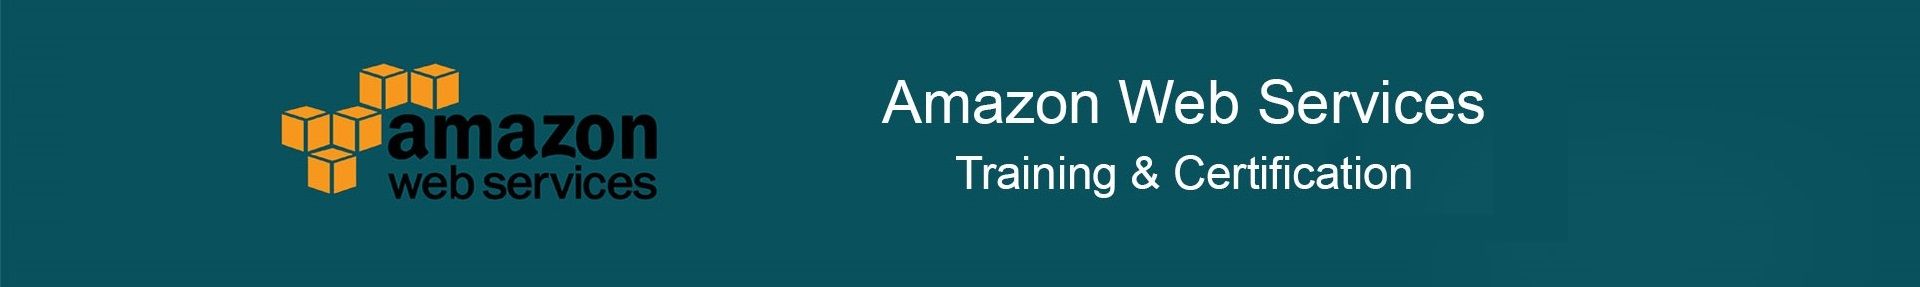 Aws Certification Aws Training Aws Boot Camp Residential